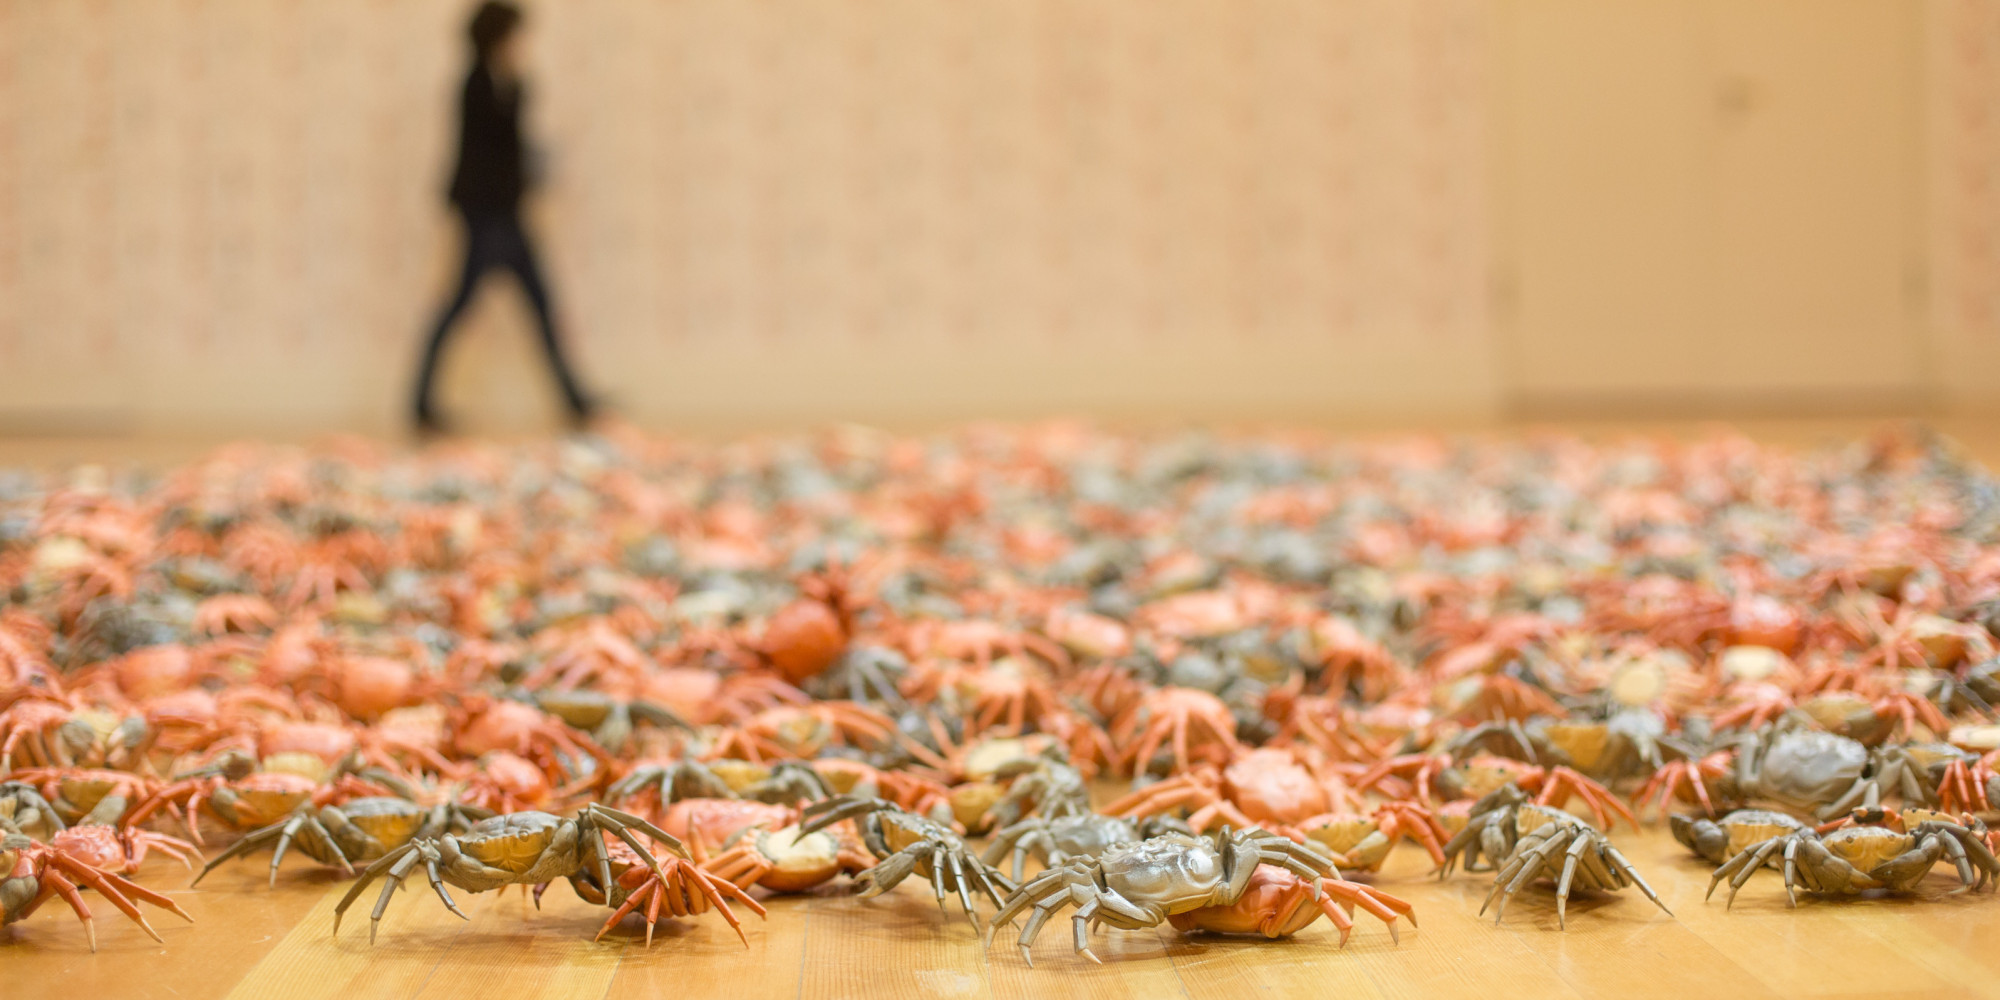 BERLIN, GERMANY - APRIL 02:  A visitor passing by the work 'He Xie' , or  'Crabs'  at the press preview for Chinese artist Ai Weiwei 'Evidence' exhibition at Martin Gropius Bau on April 2, 2014 in Berlin, Germany. The exhibition opens to the public on April 3 and runs until July 7, 2014. (Photo by Christian Marquardt/WireImage)